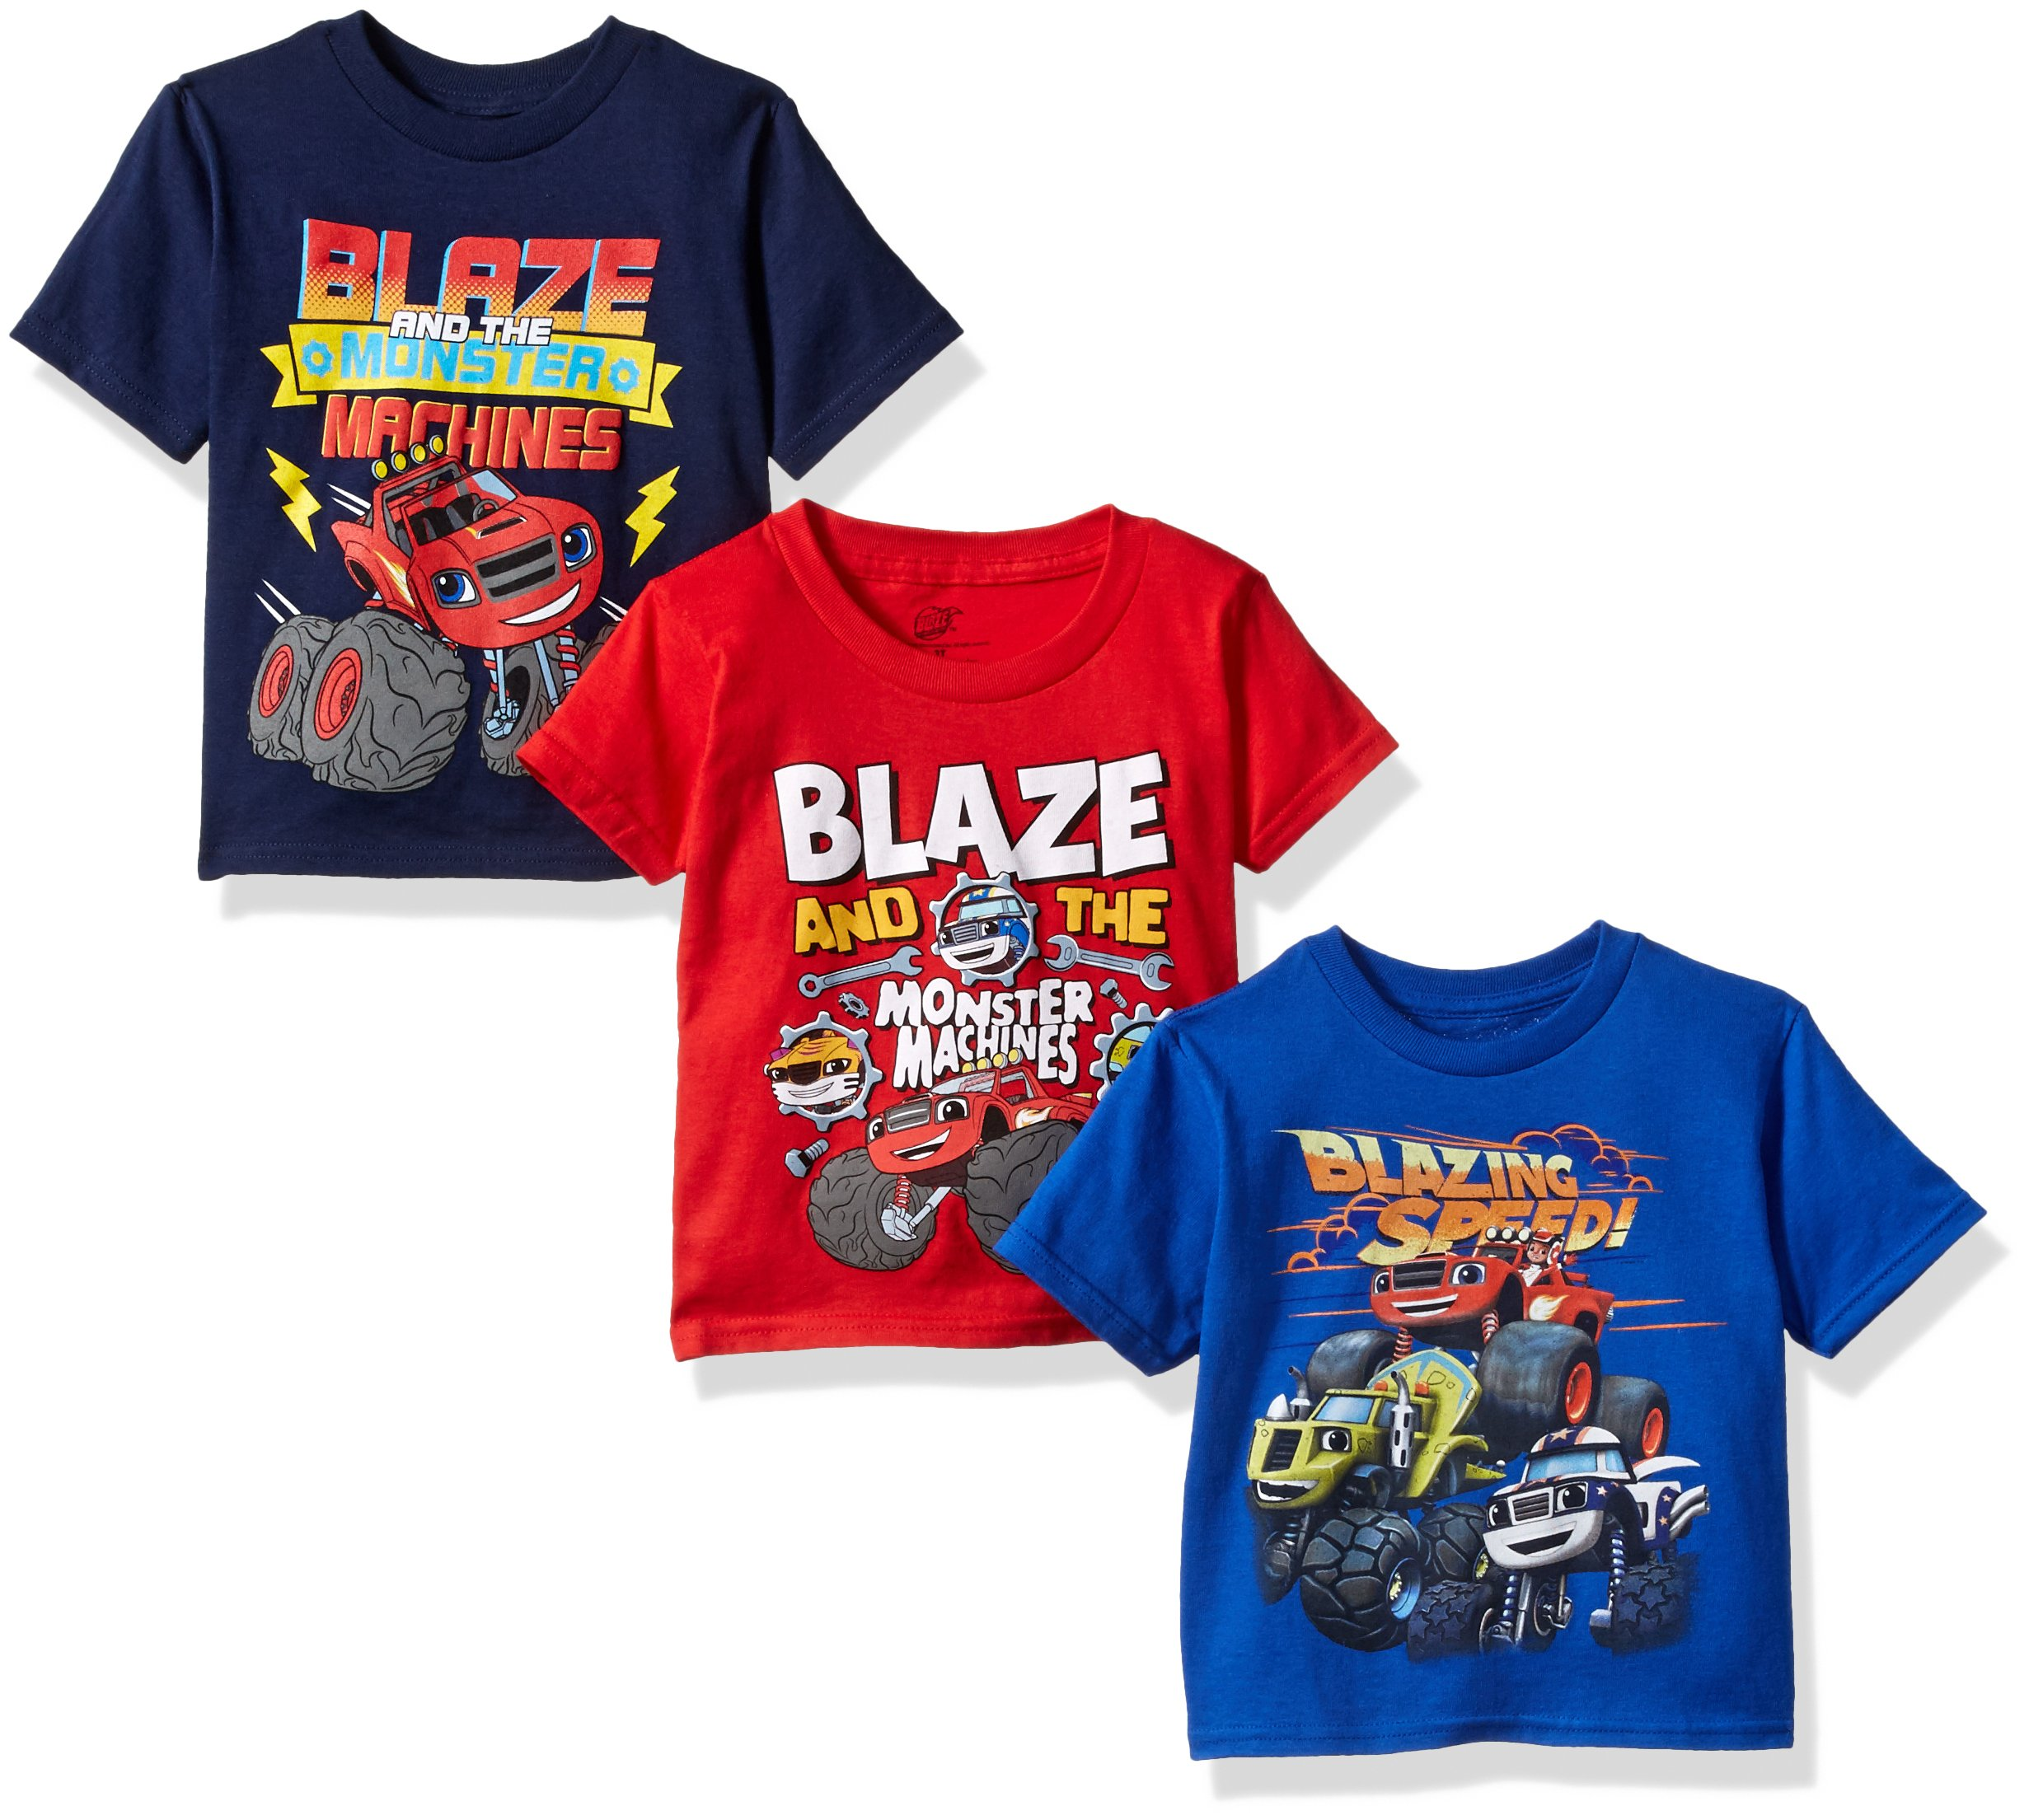 Nickelodeon Boys' Toddler Boys' Blaze and Monster Machines 3 Pack T-Shirt Bundle, Royal/Red/Navy, 4T